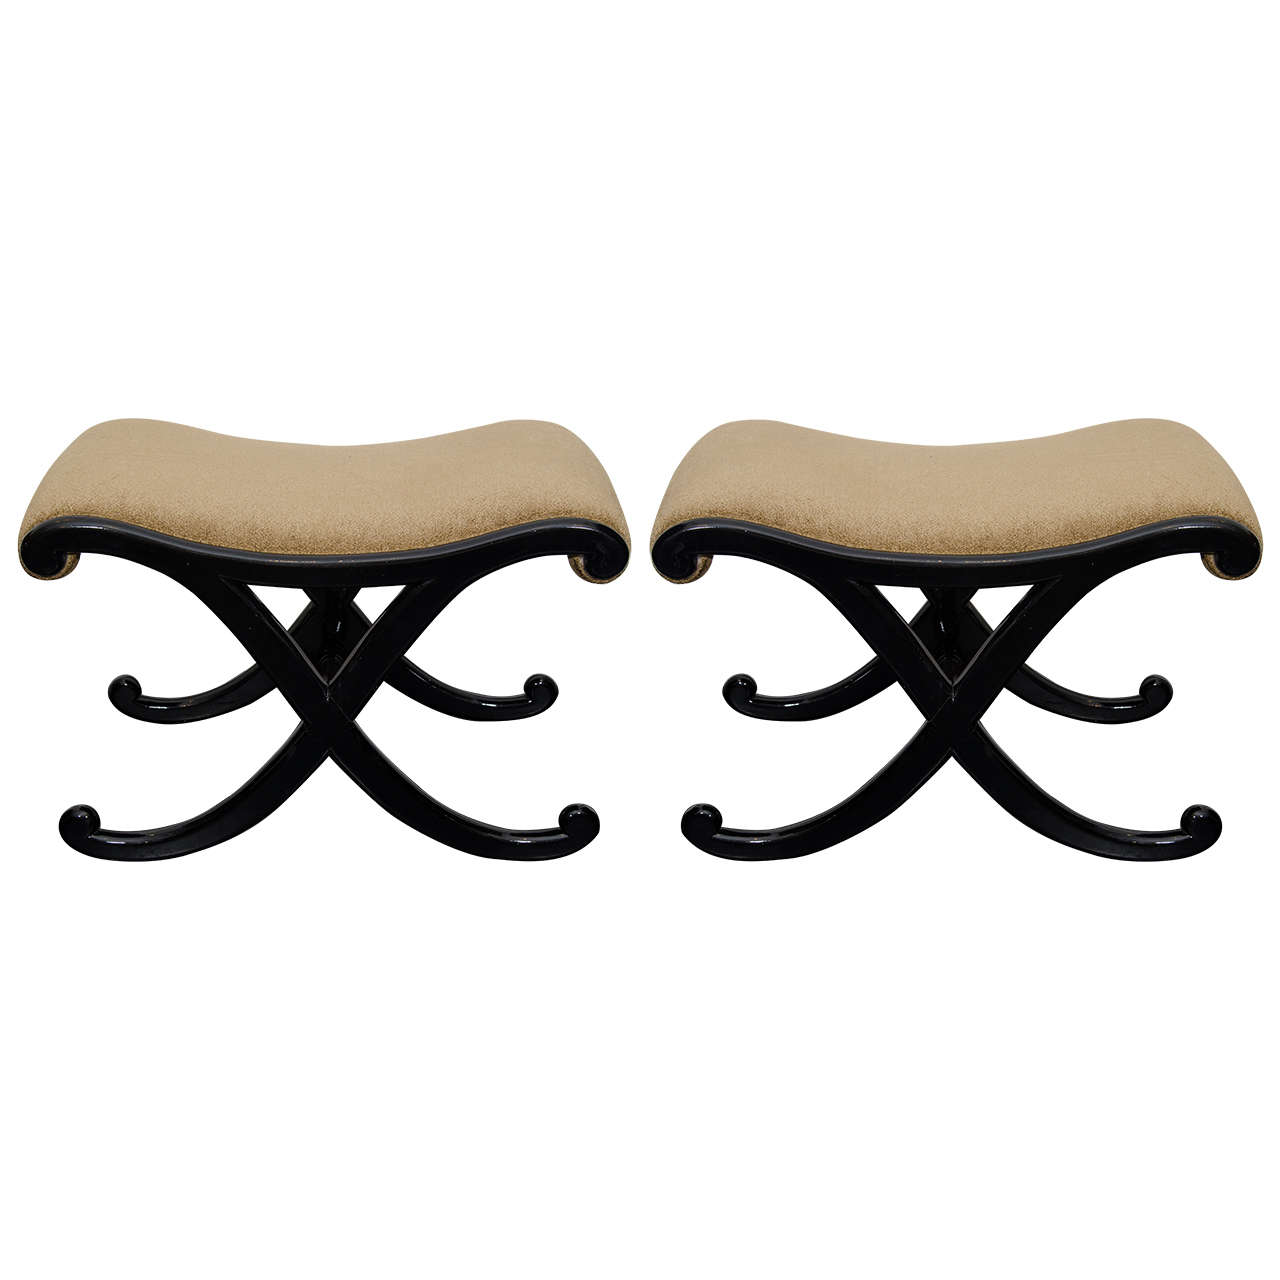 Ebony Lacquered Benches